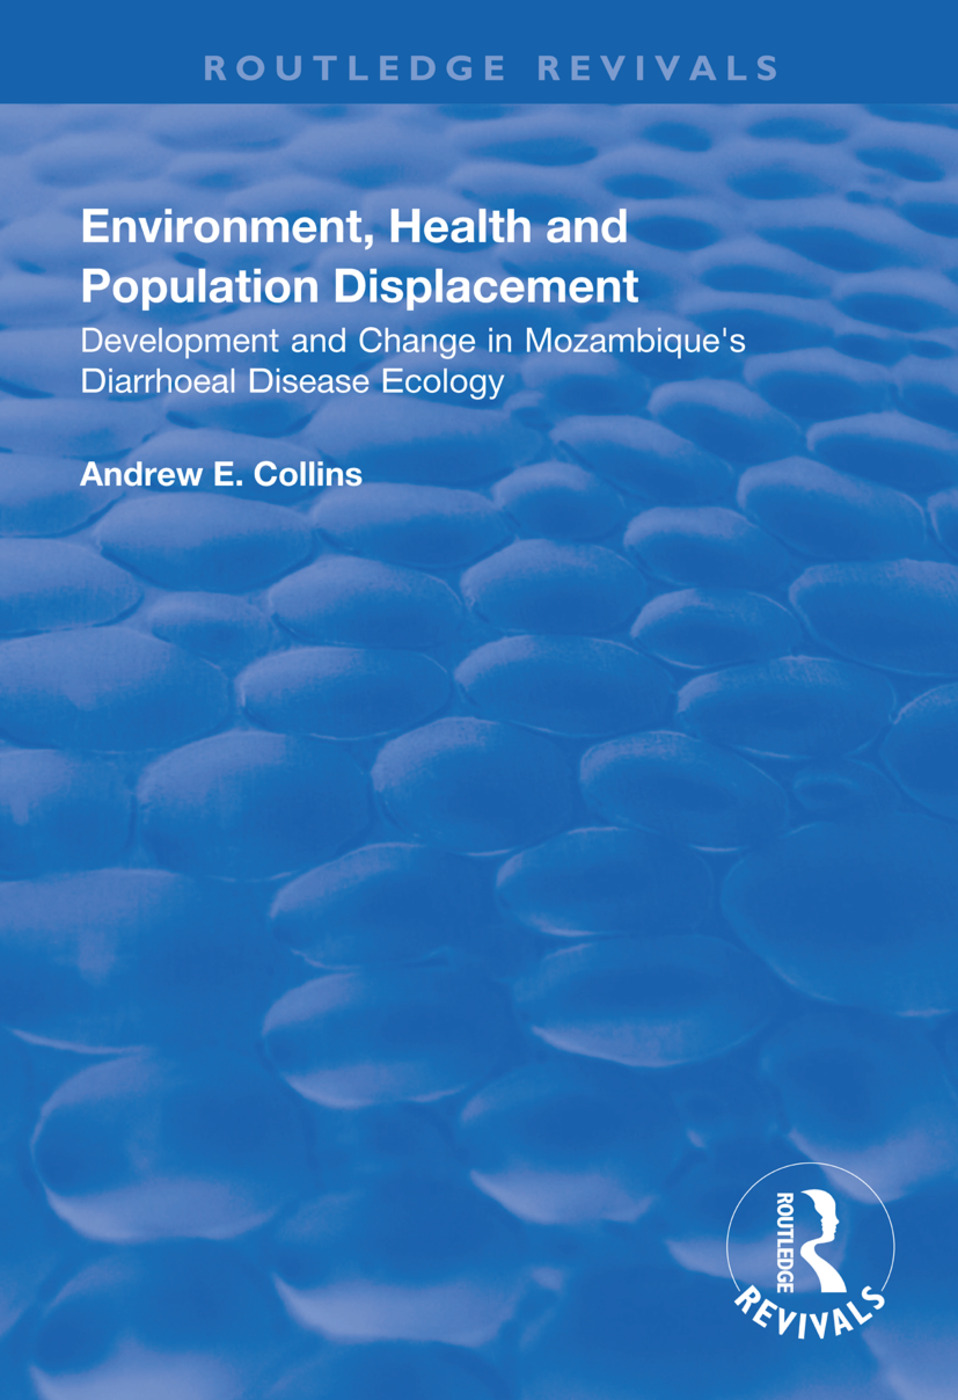 Environment, Health and Population Displacement: Development and Change in Mozambique's Diarrhoeal Disease Ecology, 1st Edition (Paperback) book cover